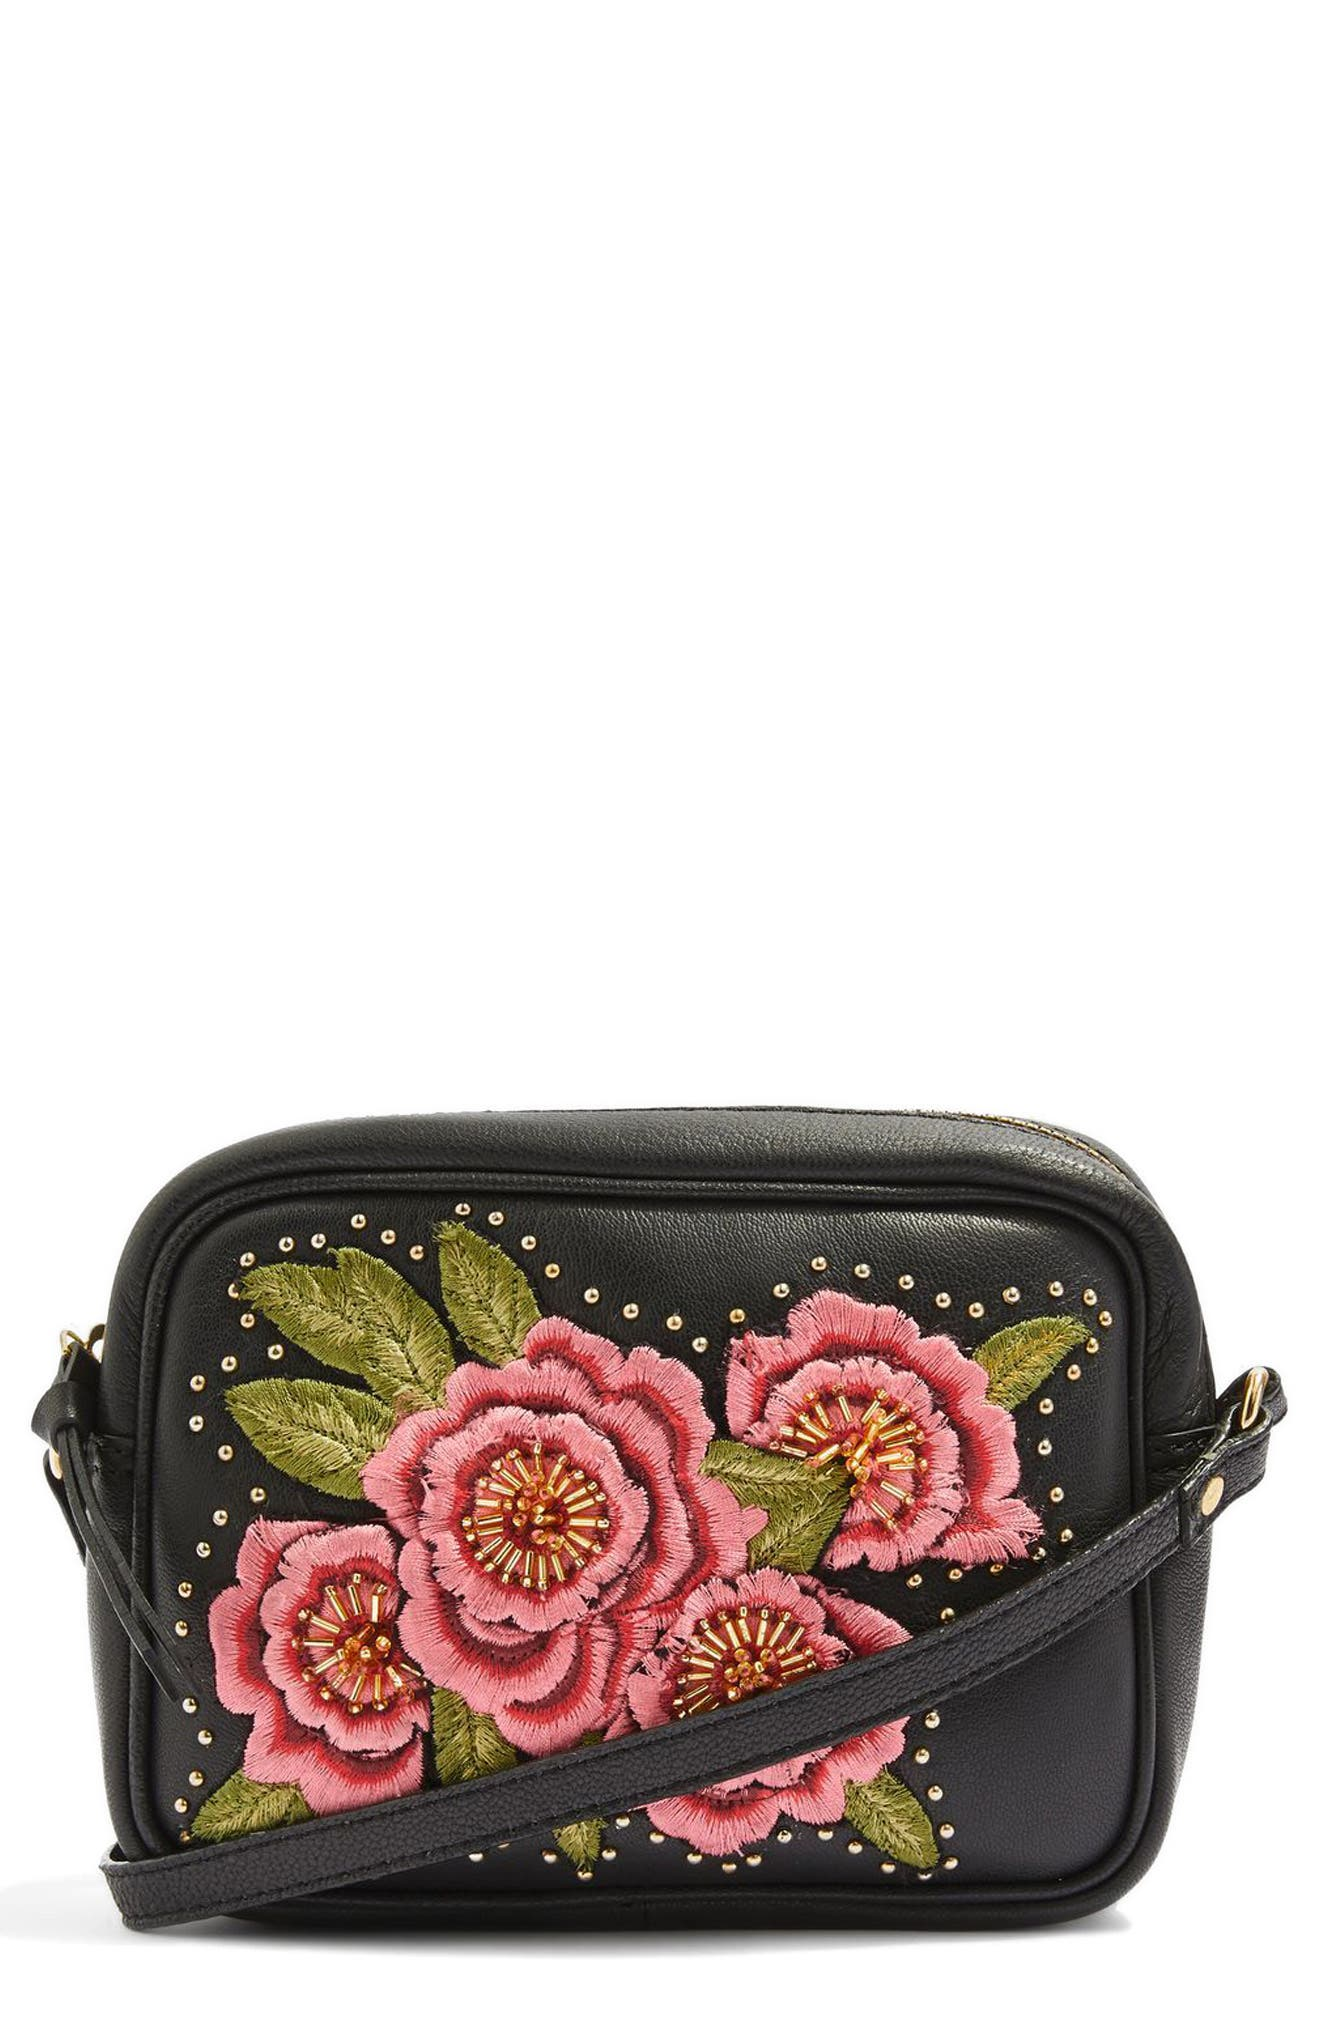 Floral Embroidered Leather Crossbody Bag,                             Main thumbnail 1, color,                             001